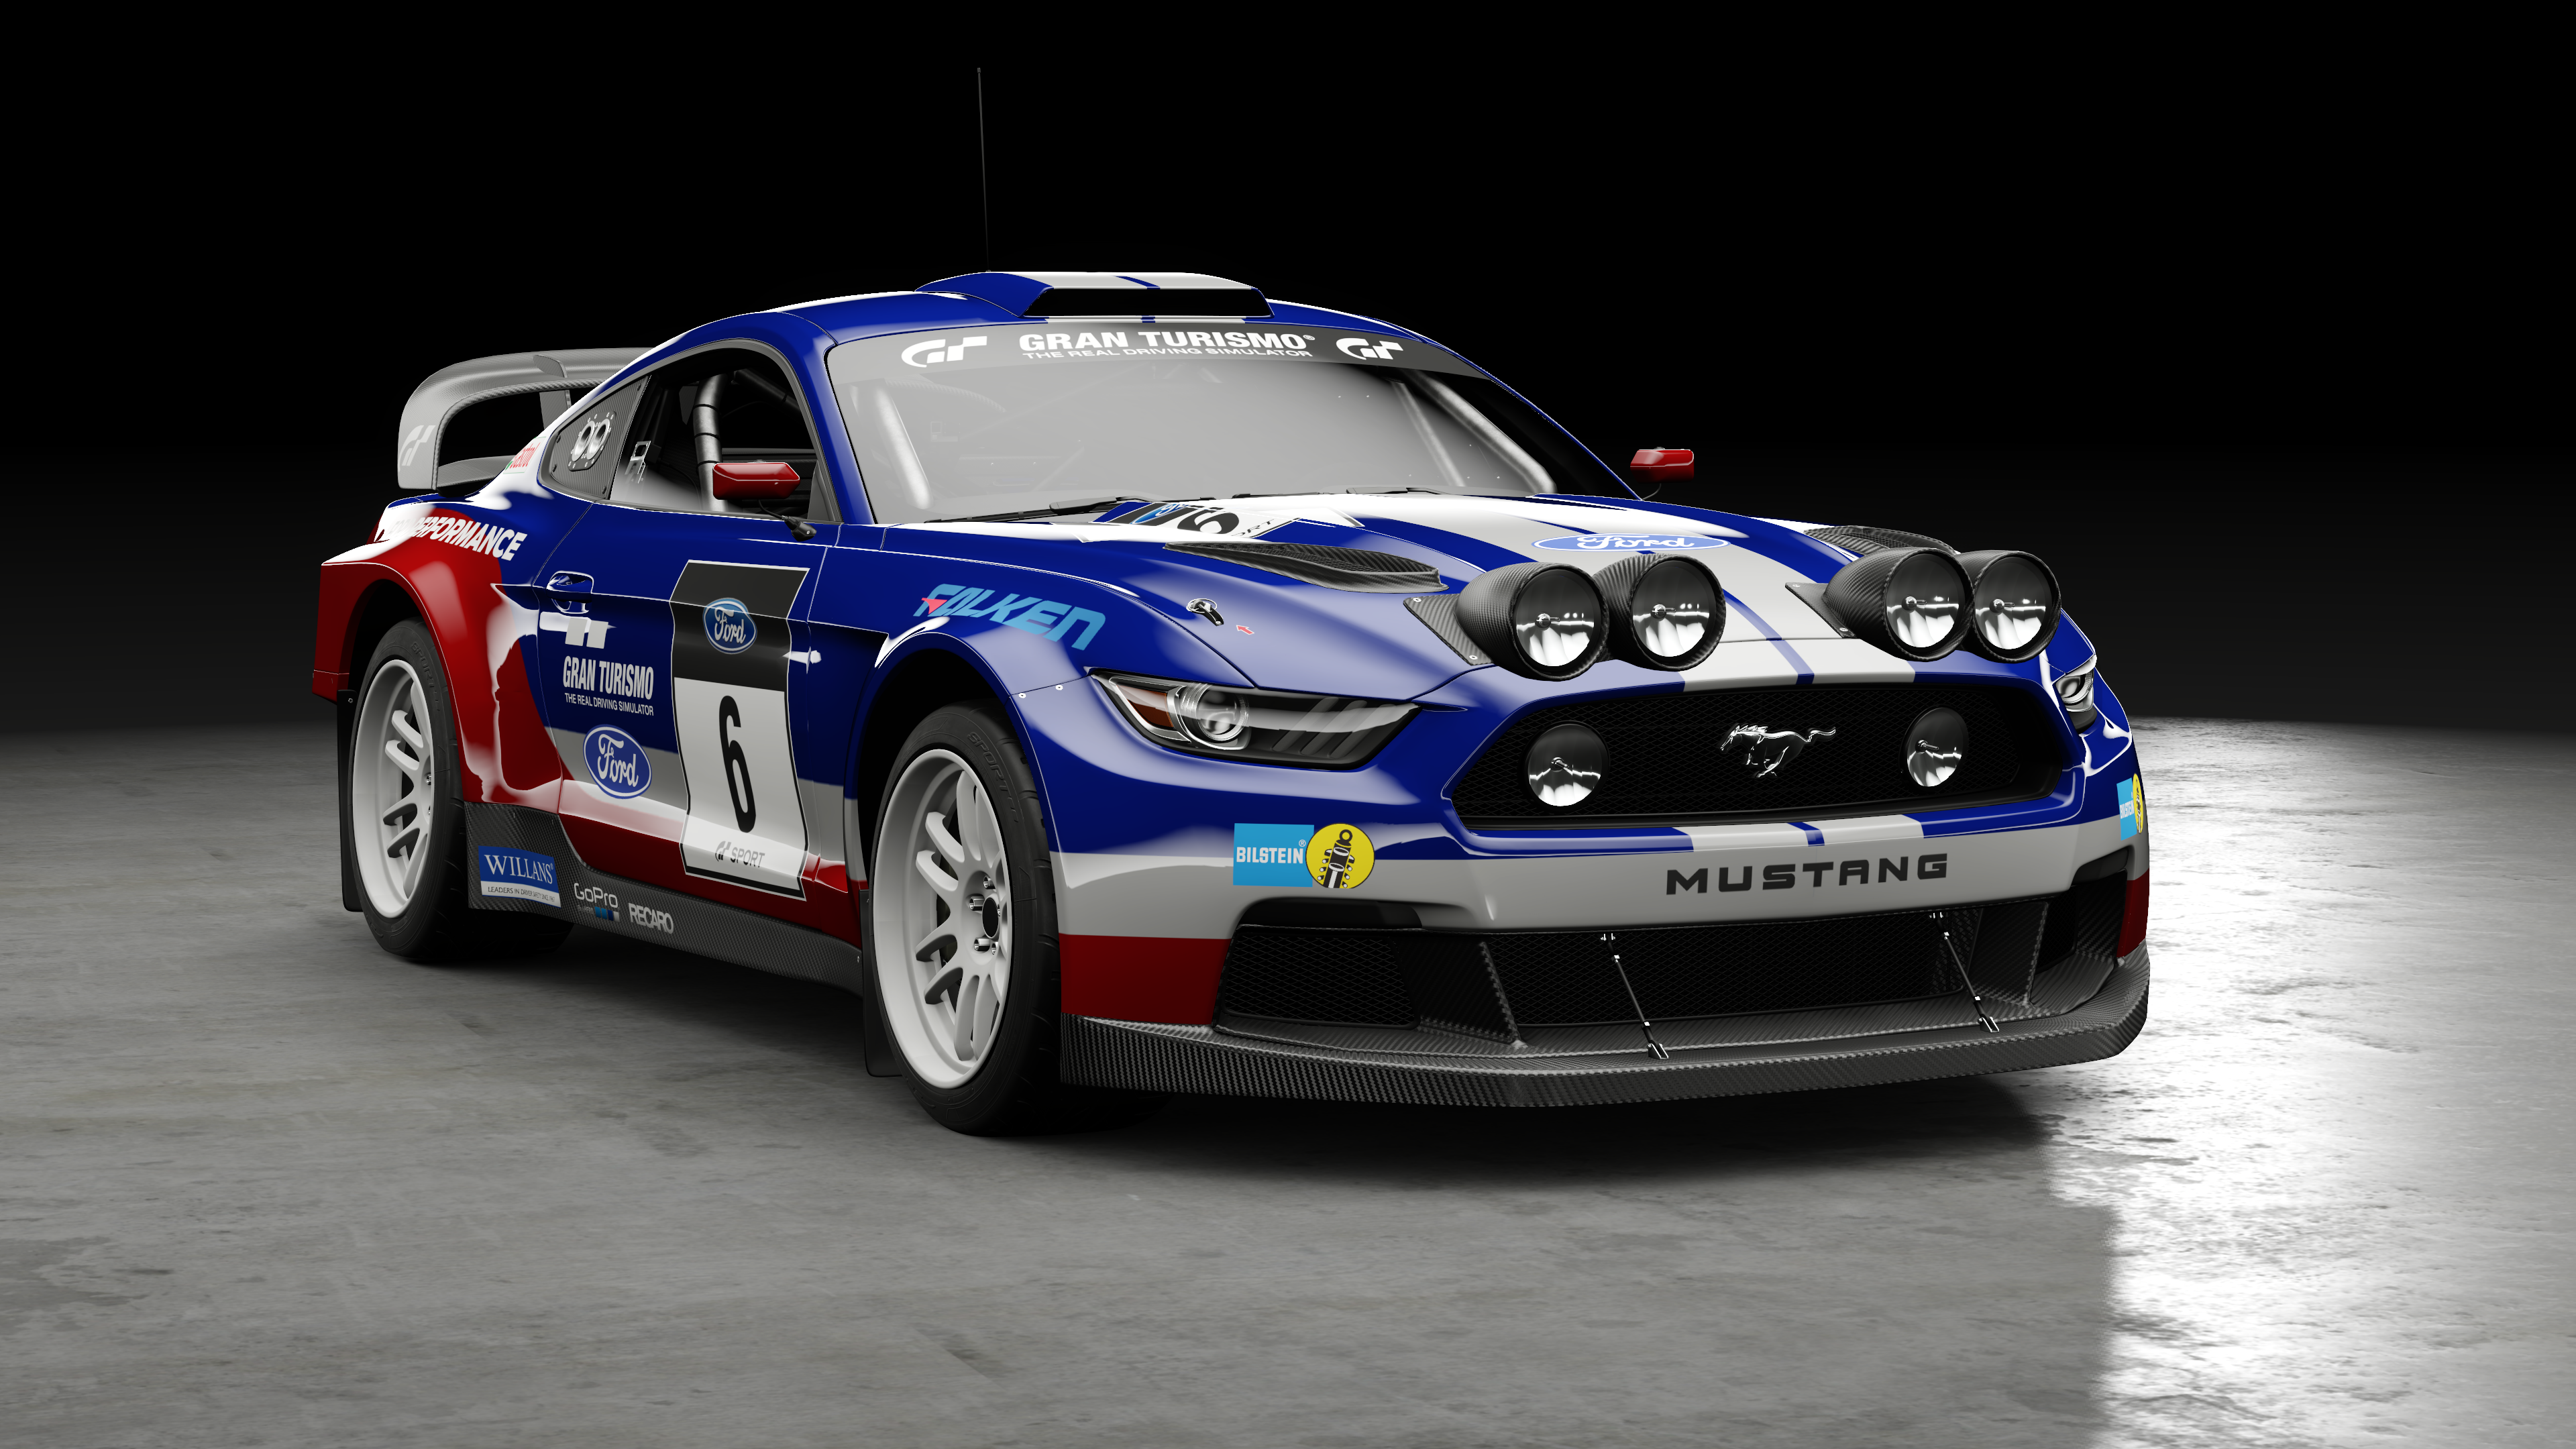 Wallpaper Mobil Sport Mustang: Ford Mustang GT Group B Rally Car 4k Ultra HD Wallpaper